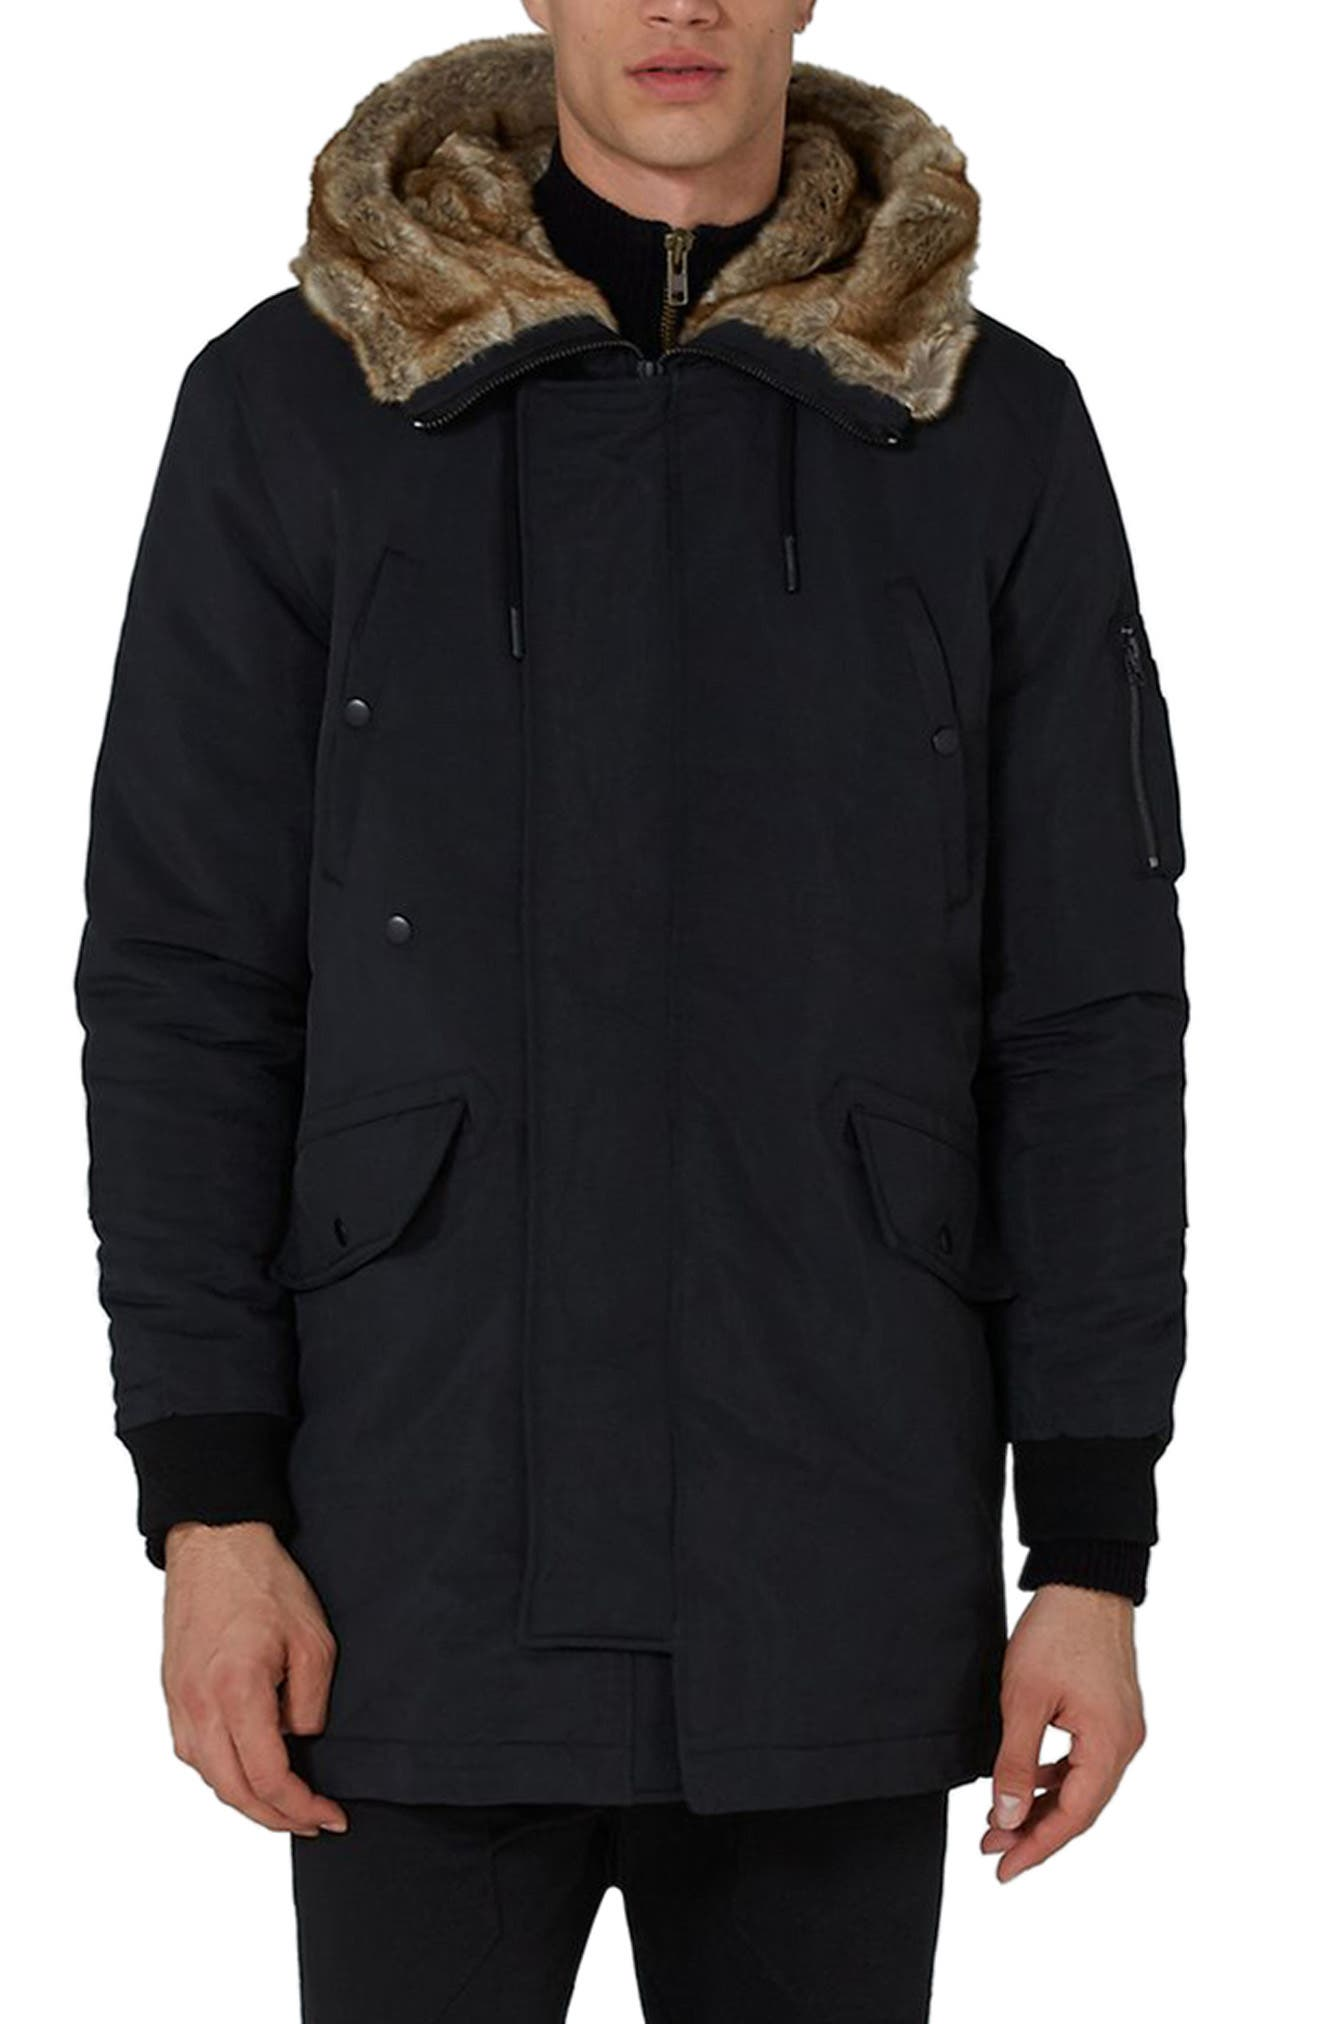 Alternate Image 1 Selected - Topman Faux Fur Lined Parka